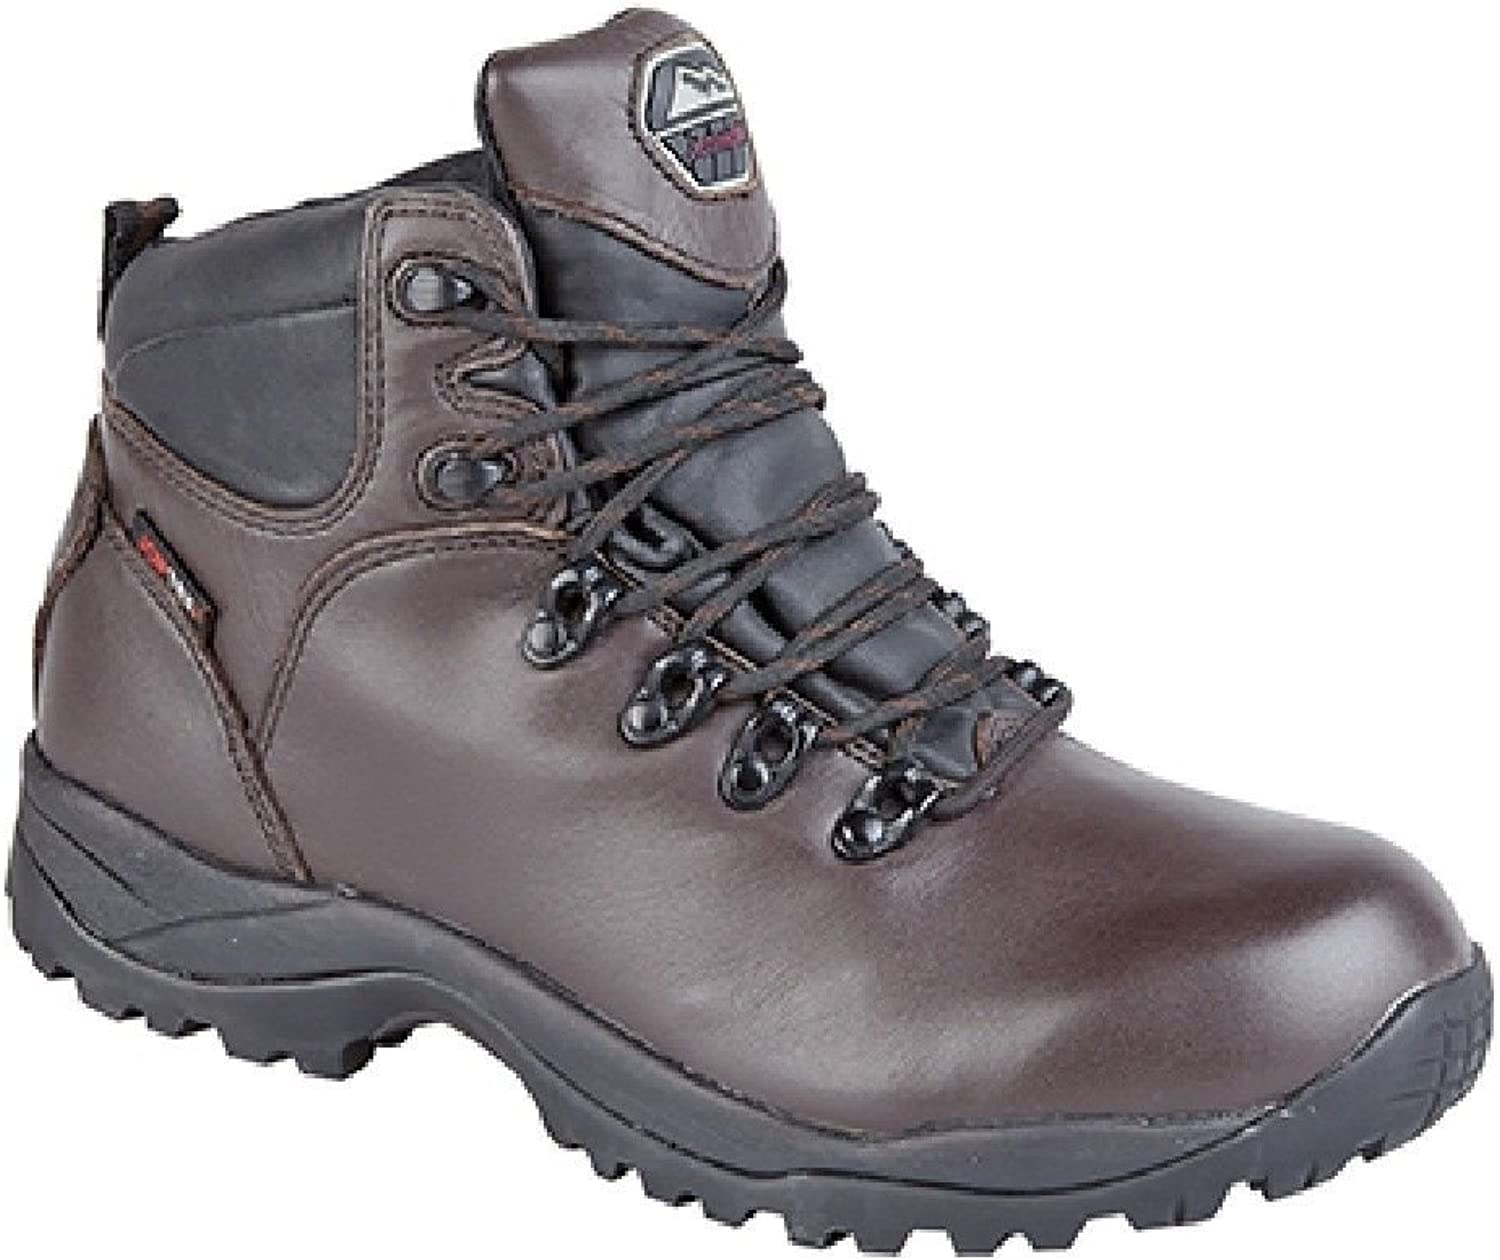 JOHNSCLIFFE TYPHOON Waterproof Super Lightweight Leather Hiking Boots Mens